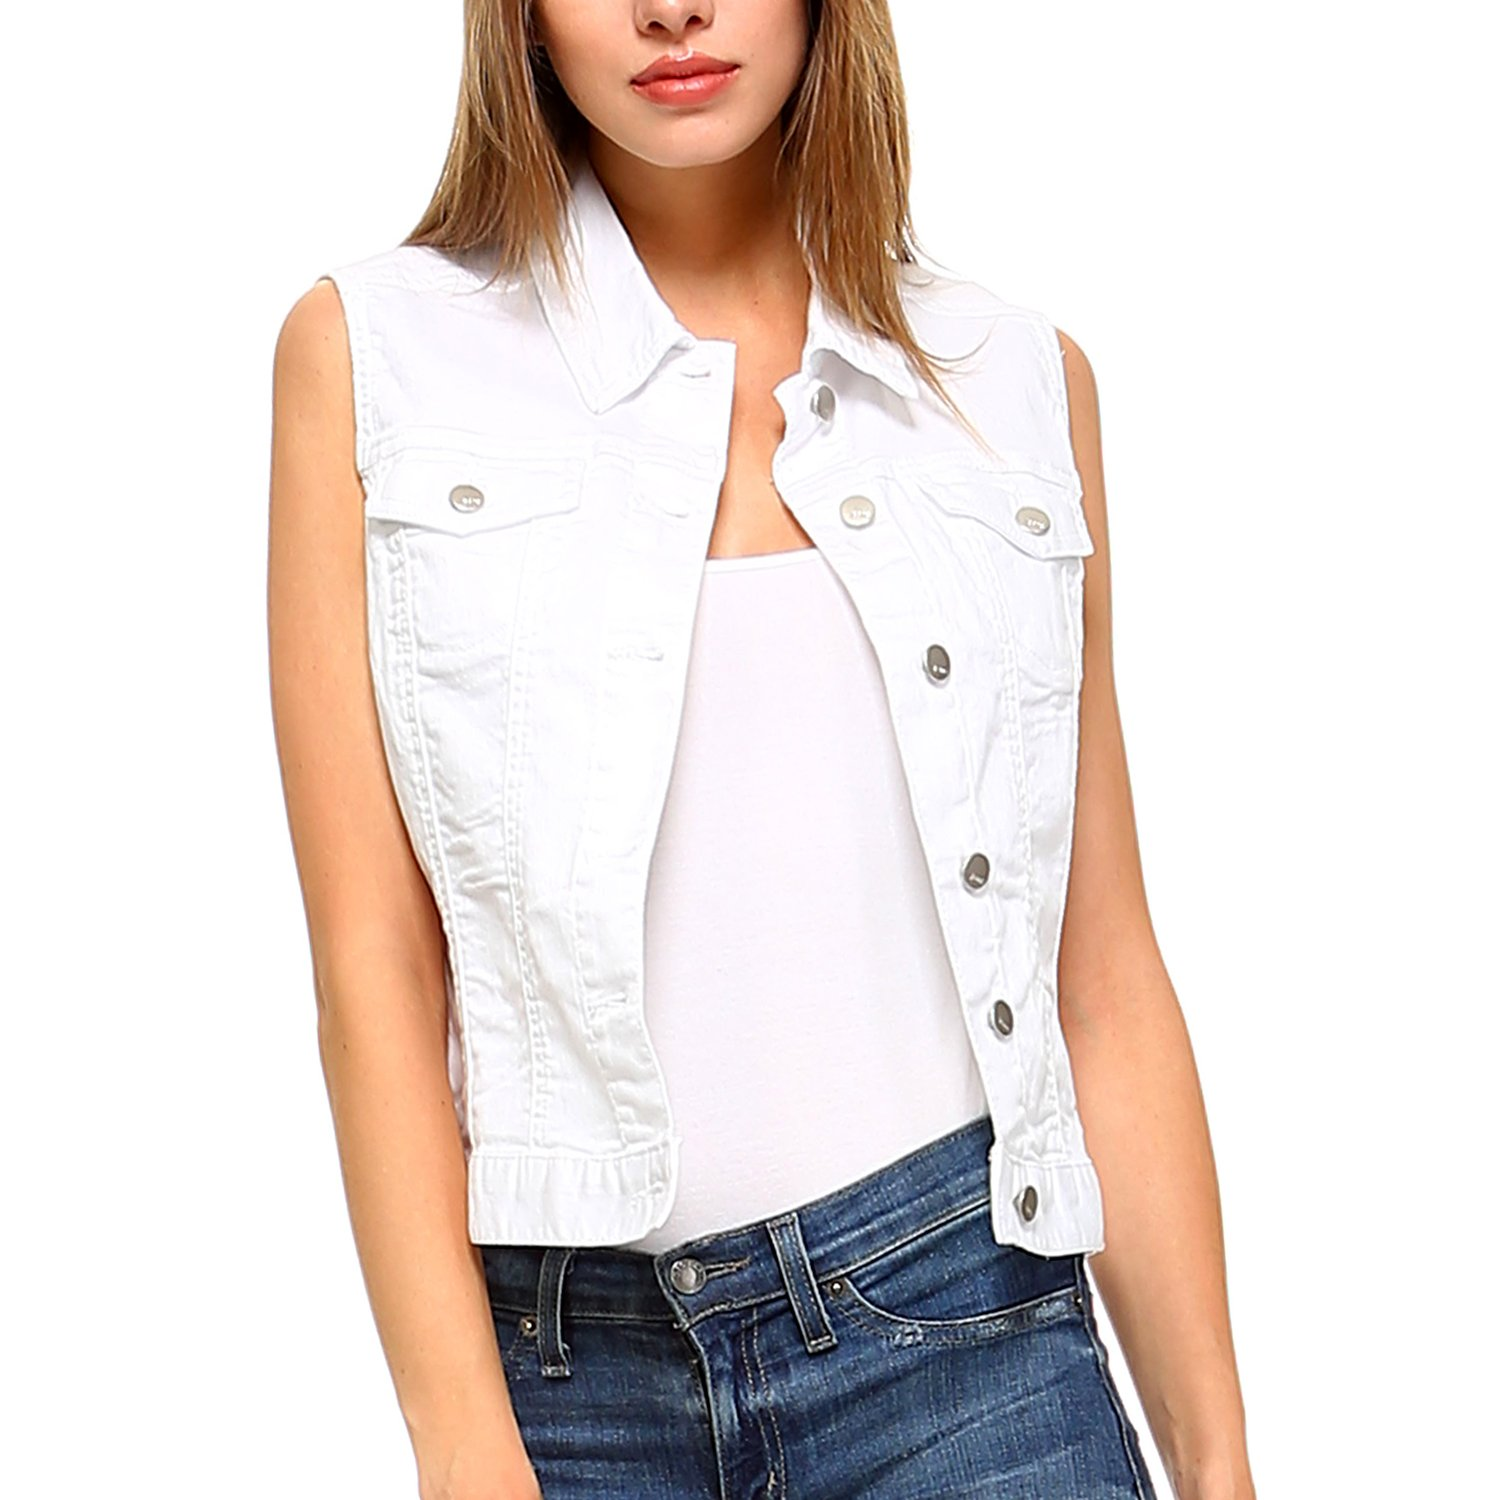 Fashionazzle Women's Buttoned Basic Solid Denim Vest Jacket (X Large, DSV01-White)